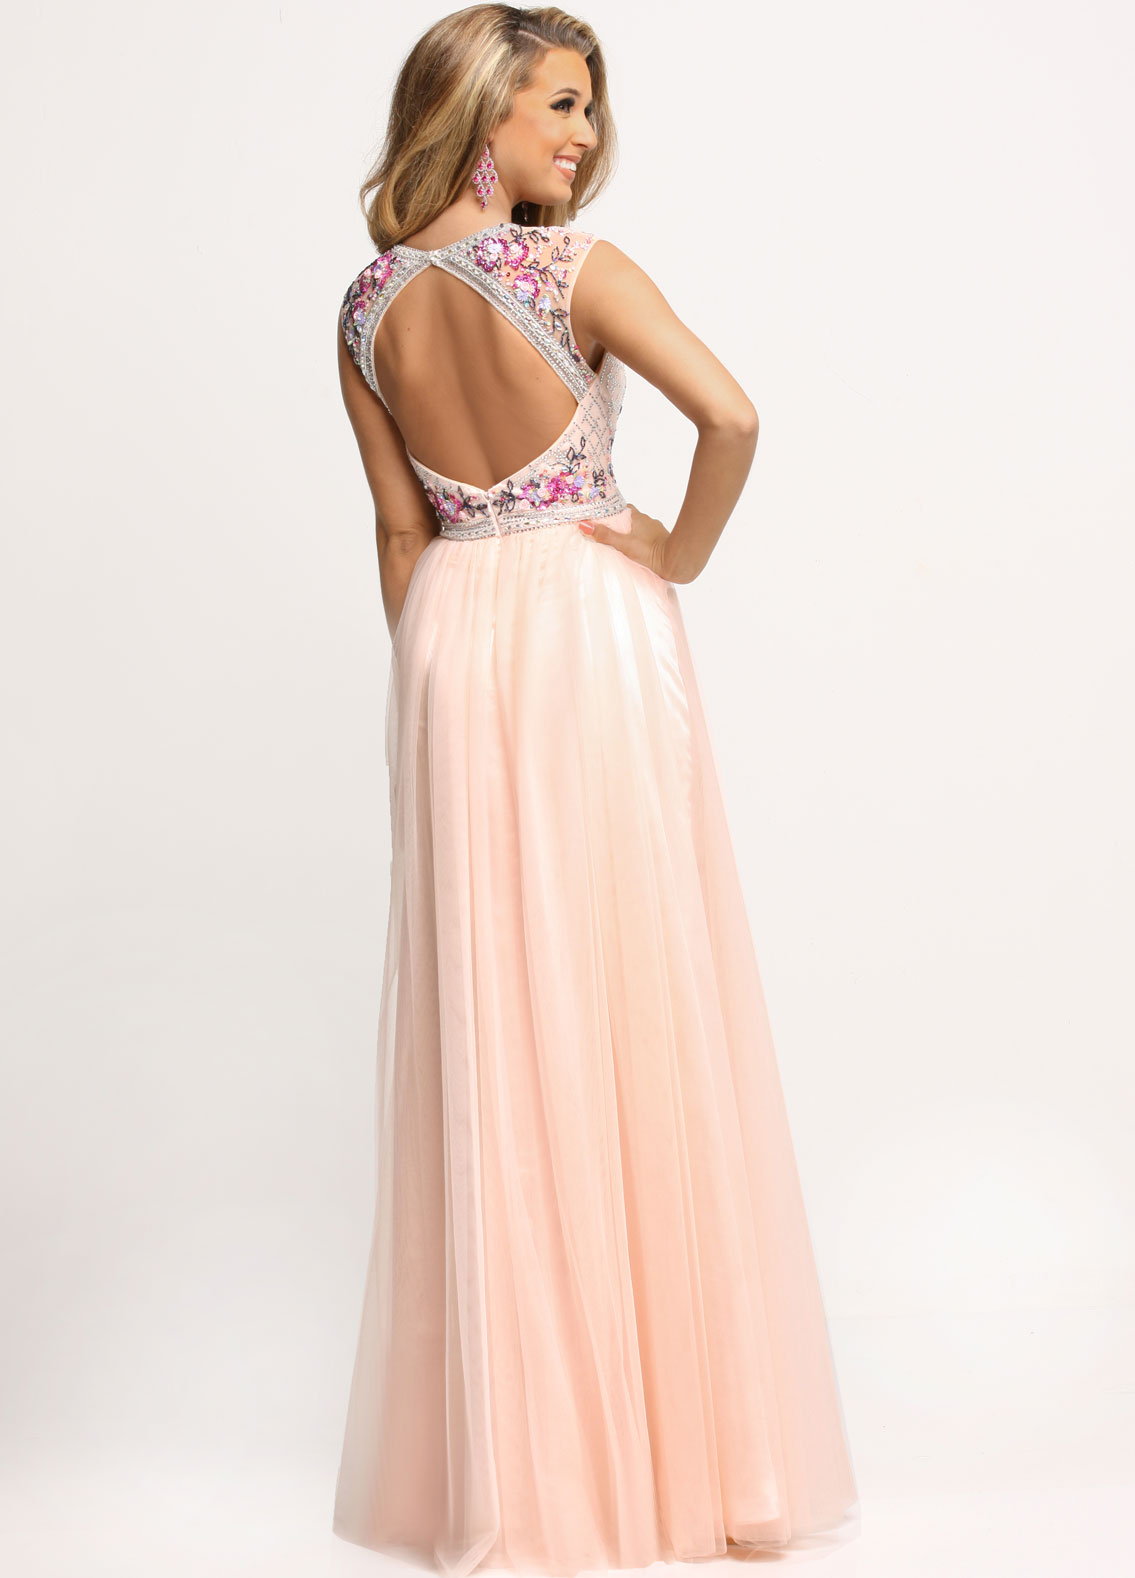 Image showing back view of style #71641